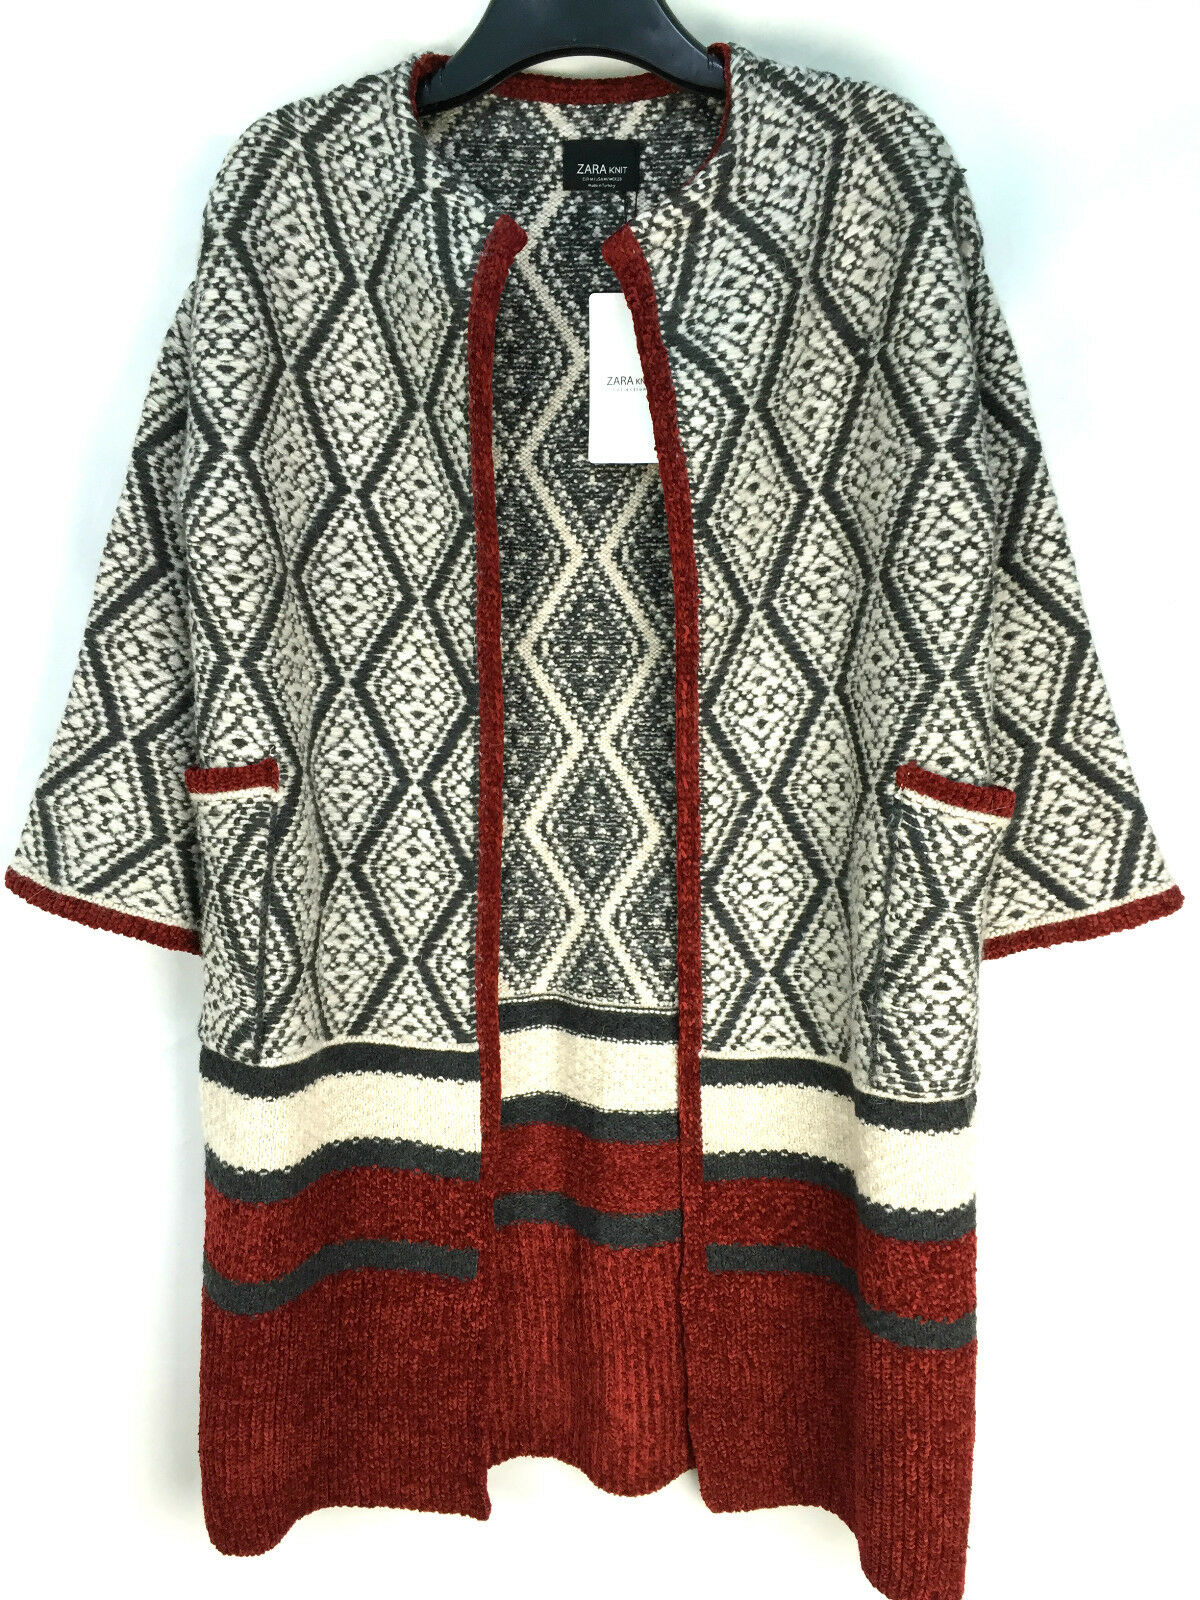 ZARA KNITTED WOOL CARDIGAN COAT SIZE MEDIUM NEW REF 6771 103